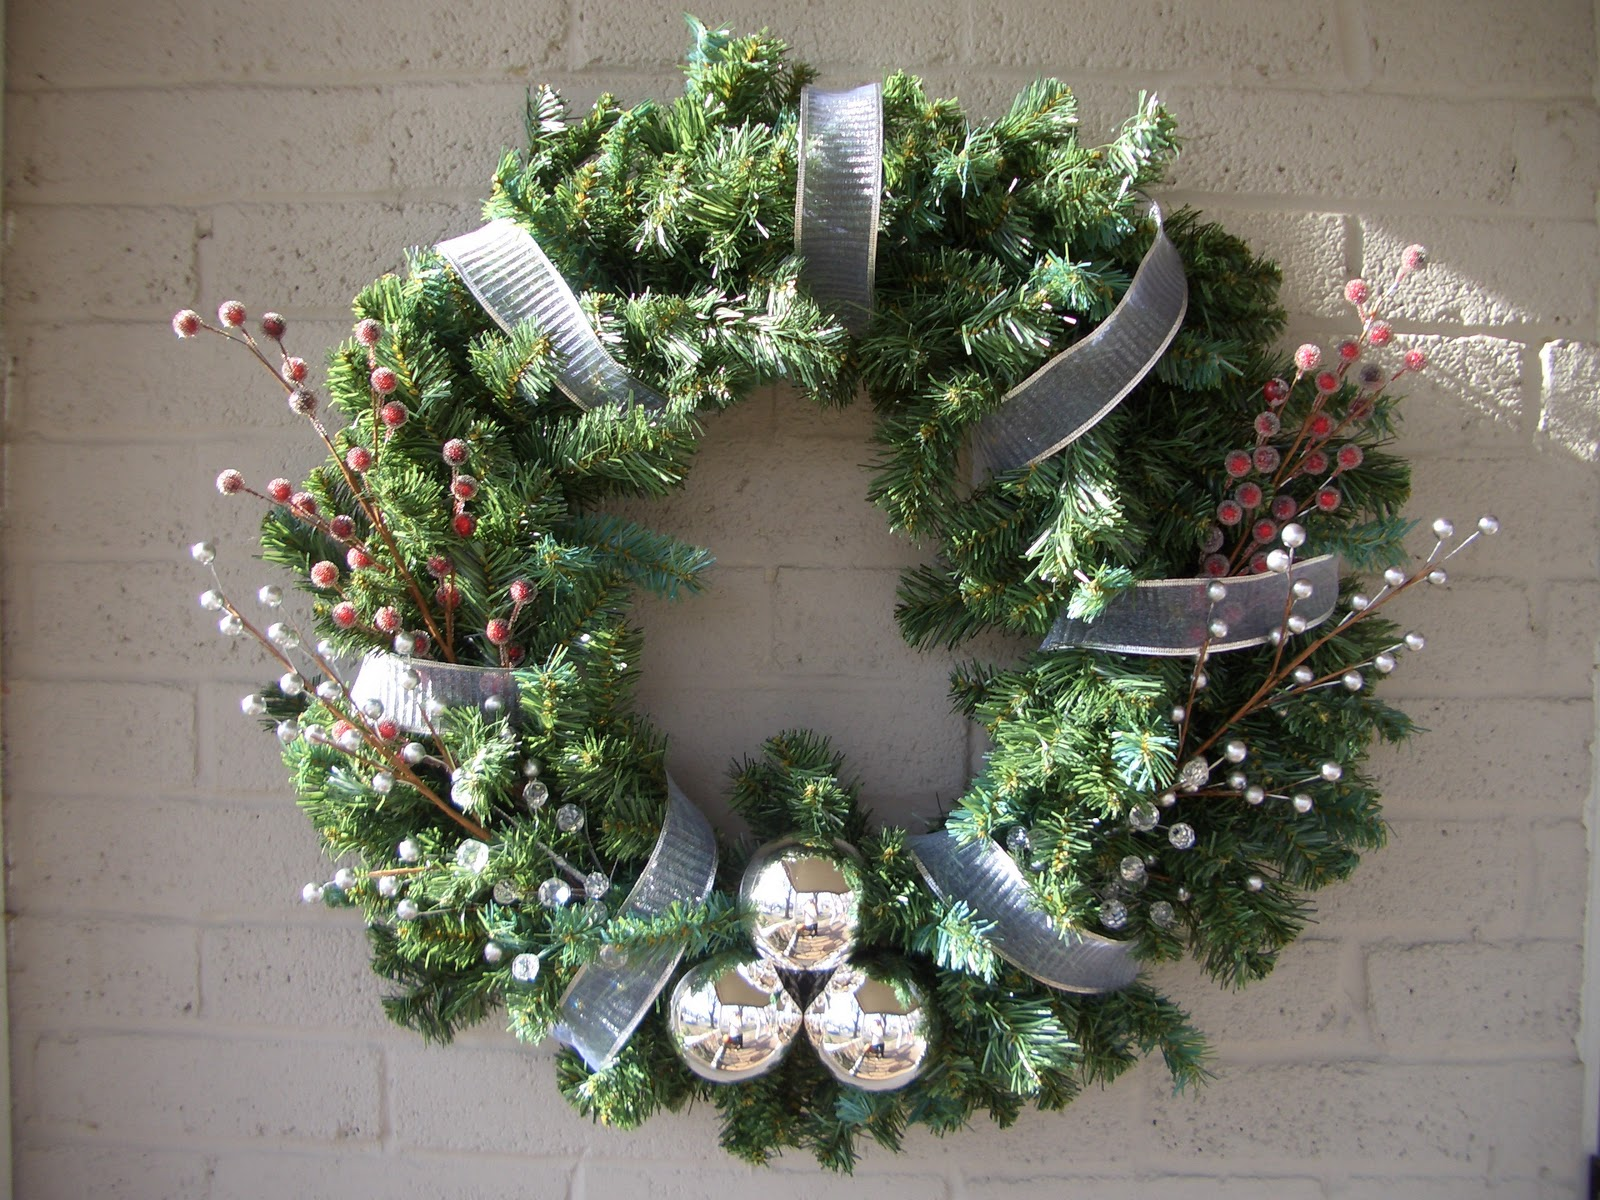 Cool home creations christmas decor 2010 greenery wreath - Decorations exterieures de noel ...